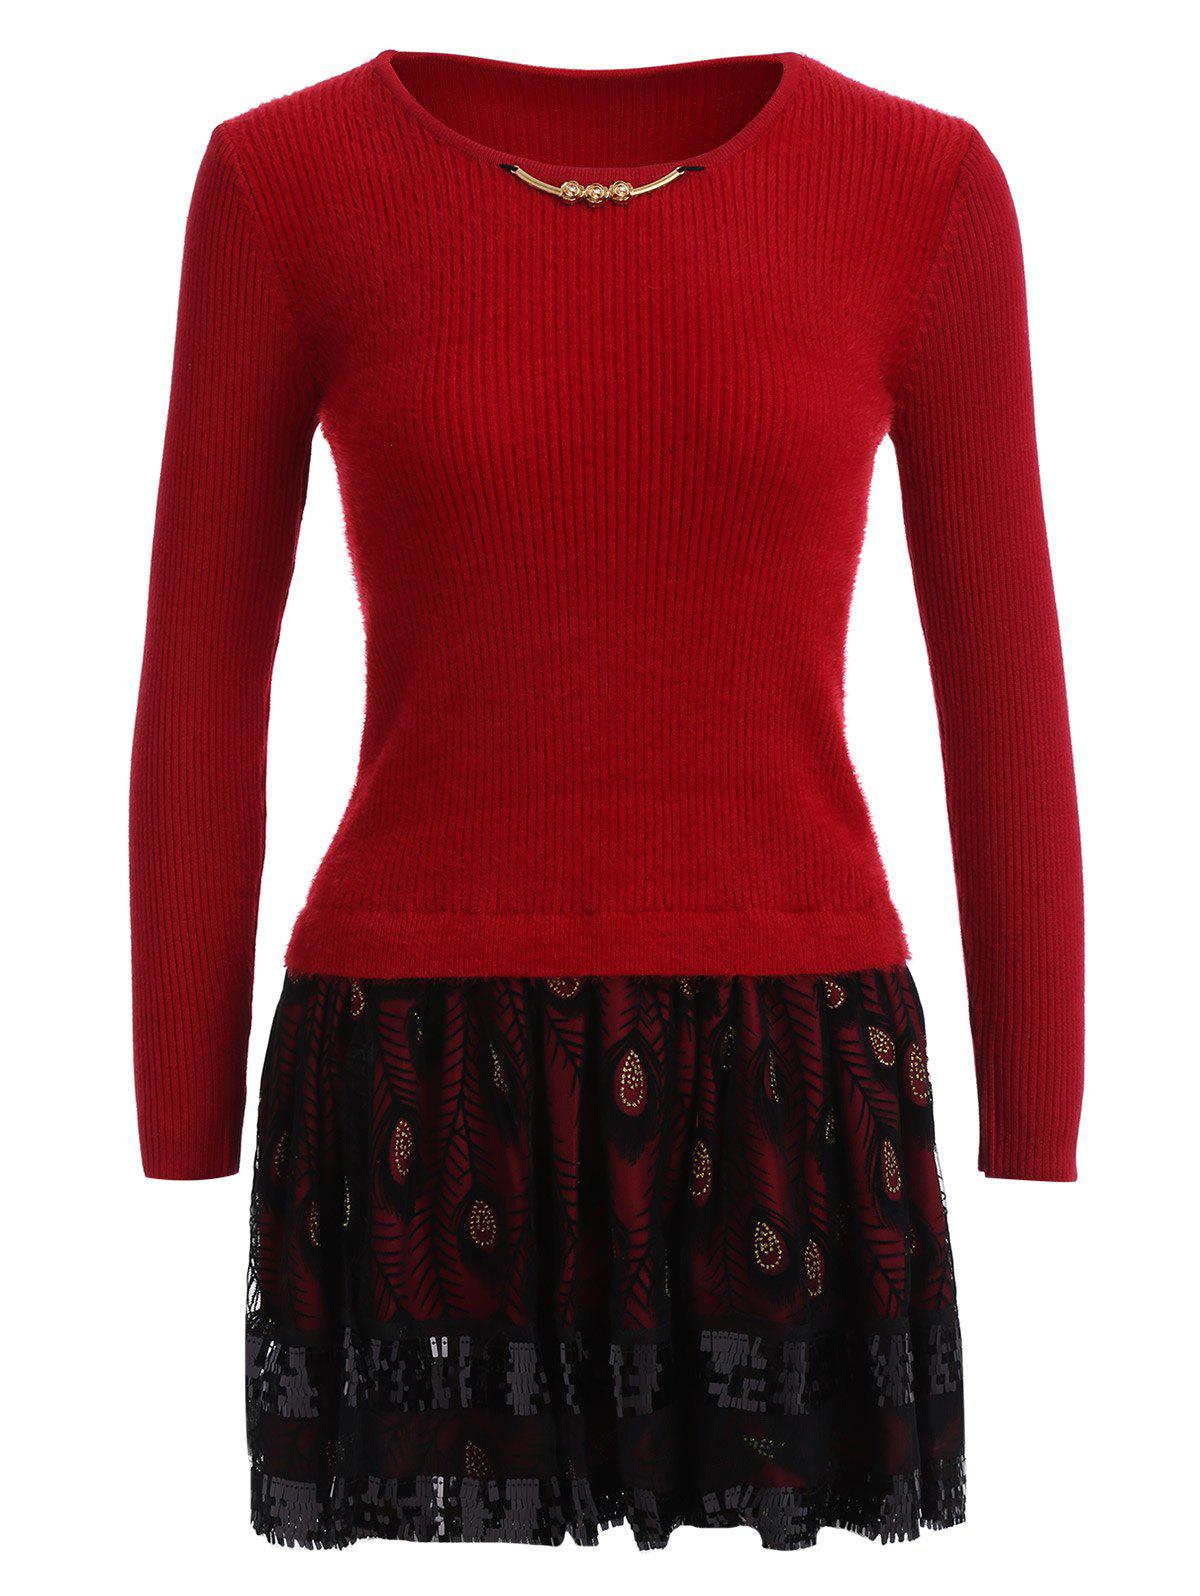 Feather Printed Fuzzy Sweater Dress - RED ONE SIZE